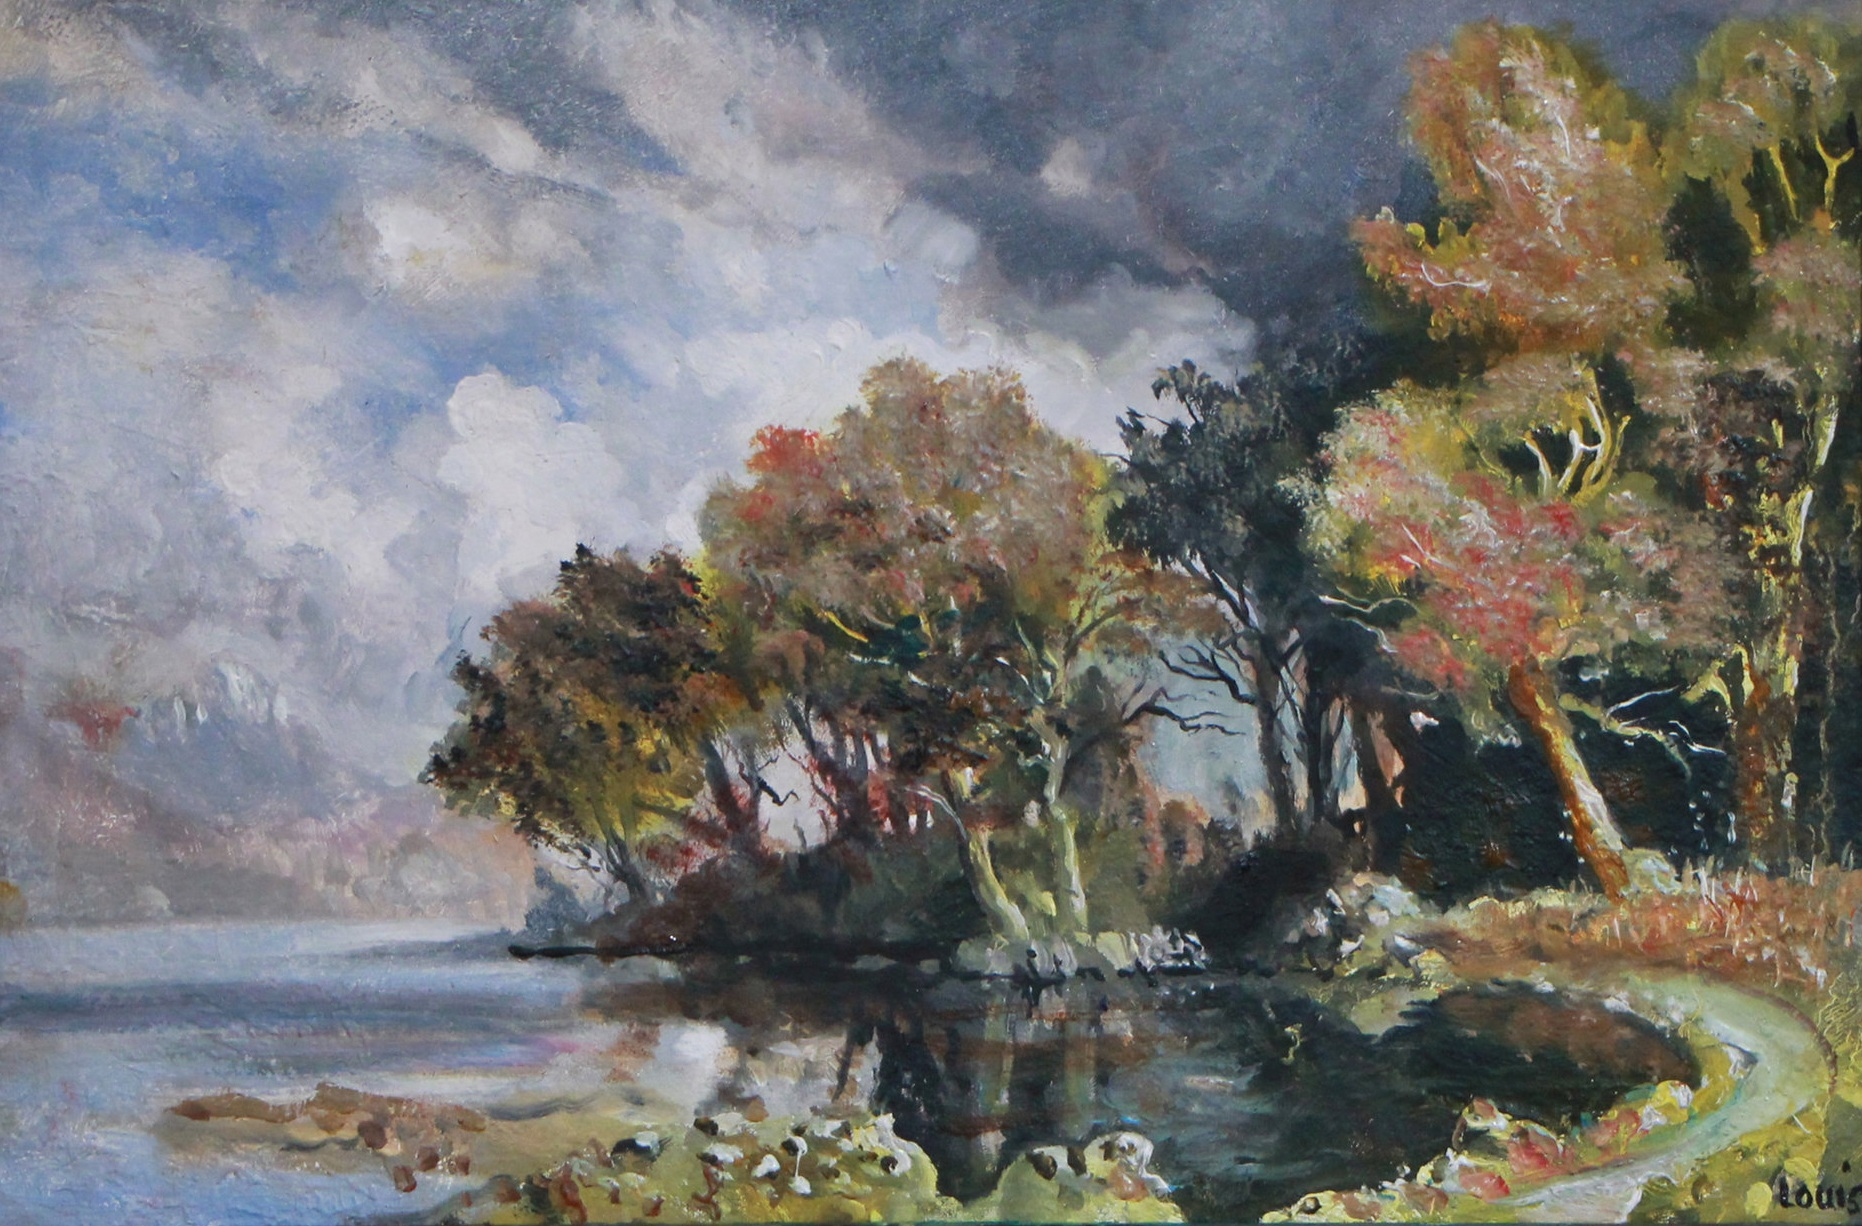 On The Lake Shore  57 x 42 cm, oil on canvas. #A8 - 2015